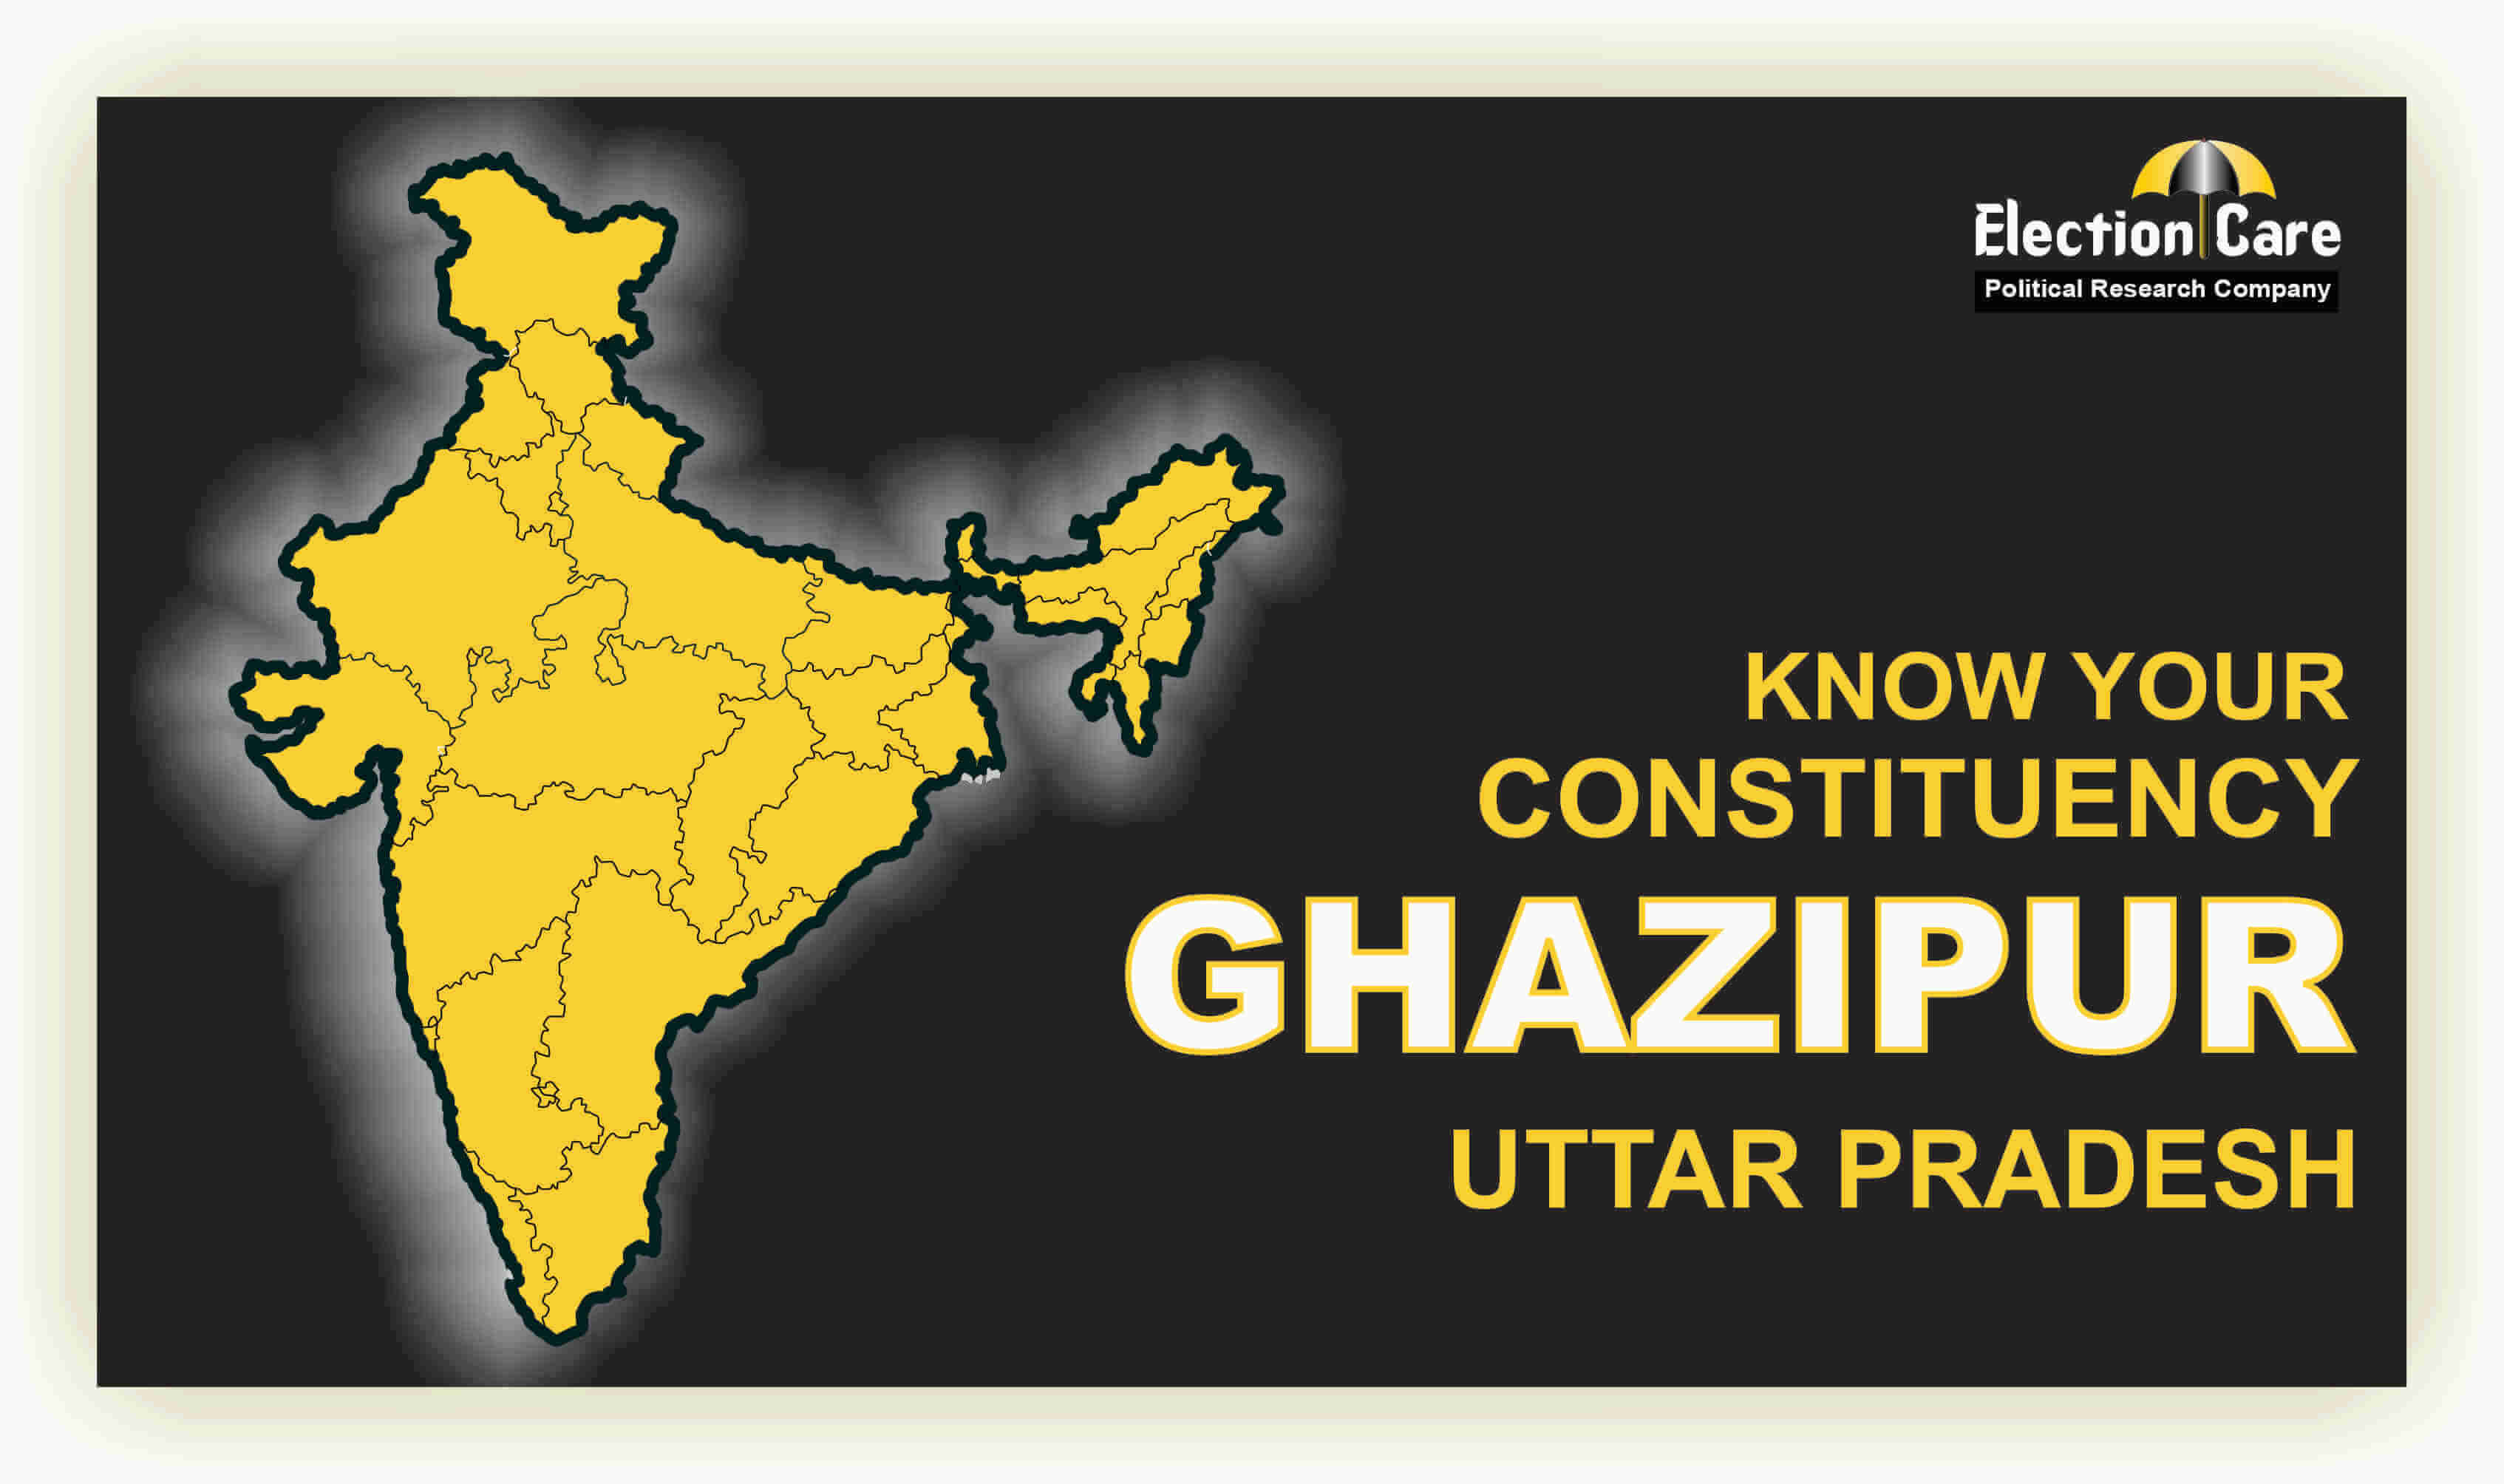 Ghazipur Parliament Election Result